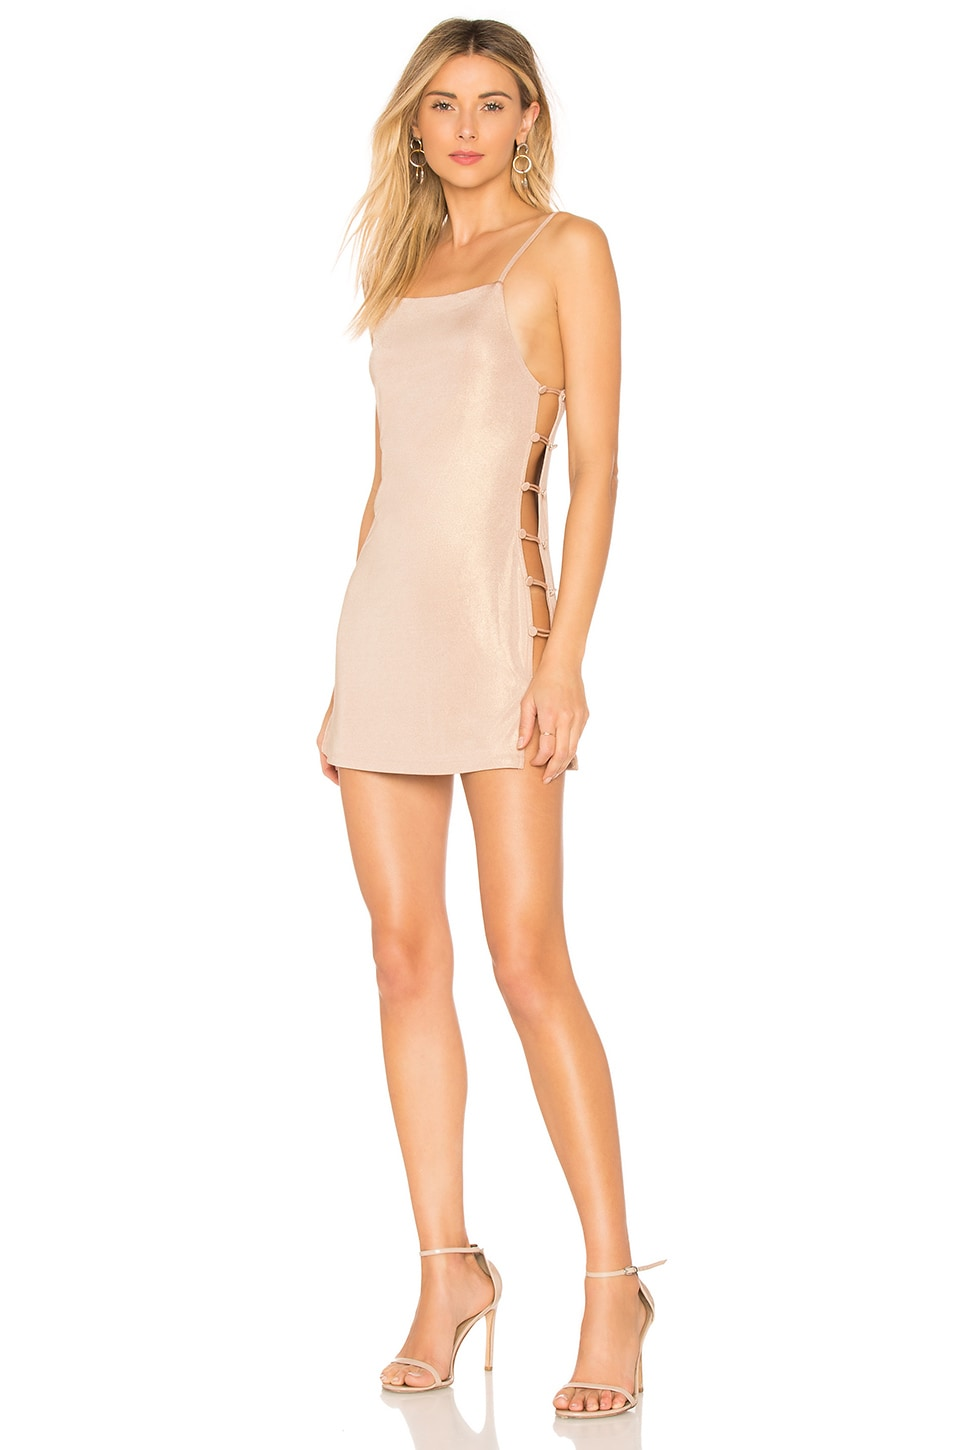 h:ours Giselle Dress in Pink Champagne